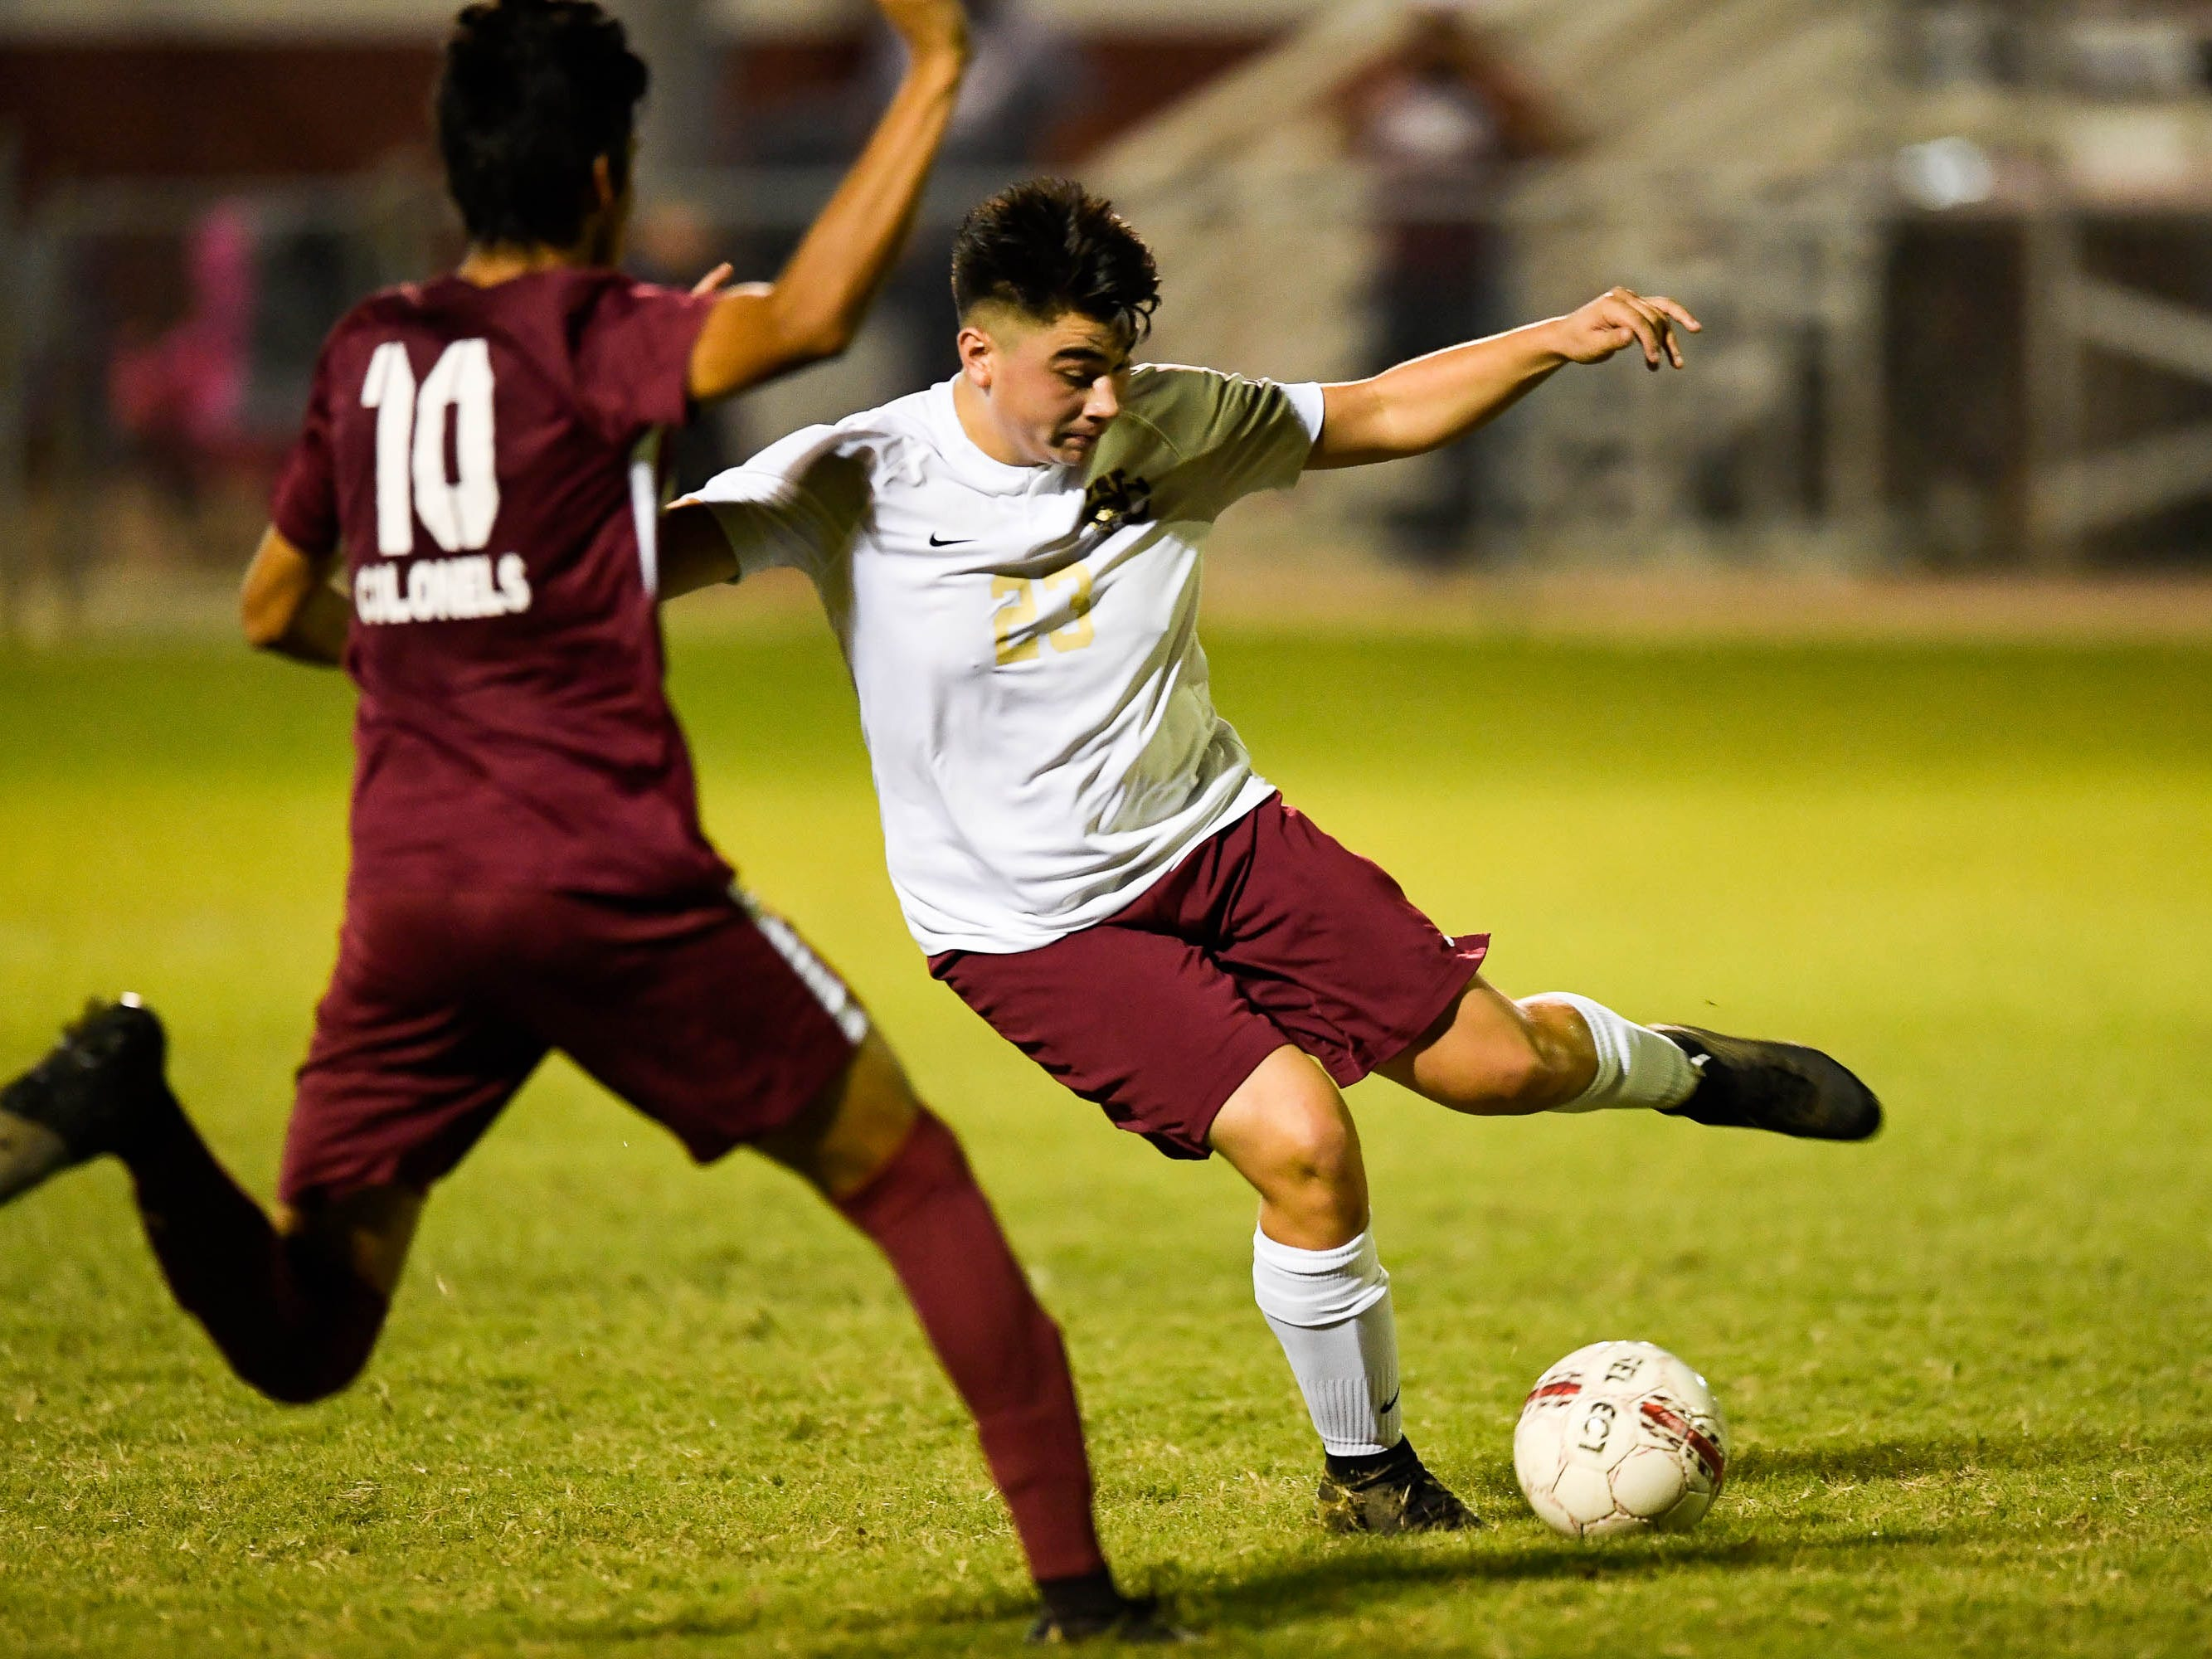 Henderson County's David Gonzalez (10) and Webster's Henry Portillo (23) in action as the Henderson County Colonels play the Webster County Trojans in the Sixth District Soccer Tournament at Colonel Field Wednesday, October 10, 2018.